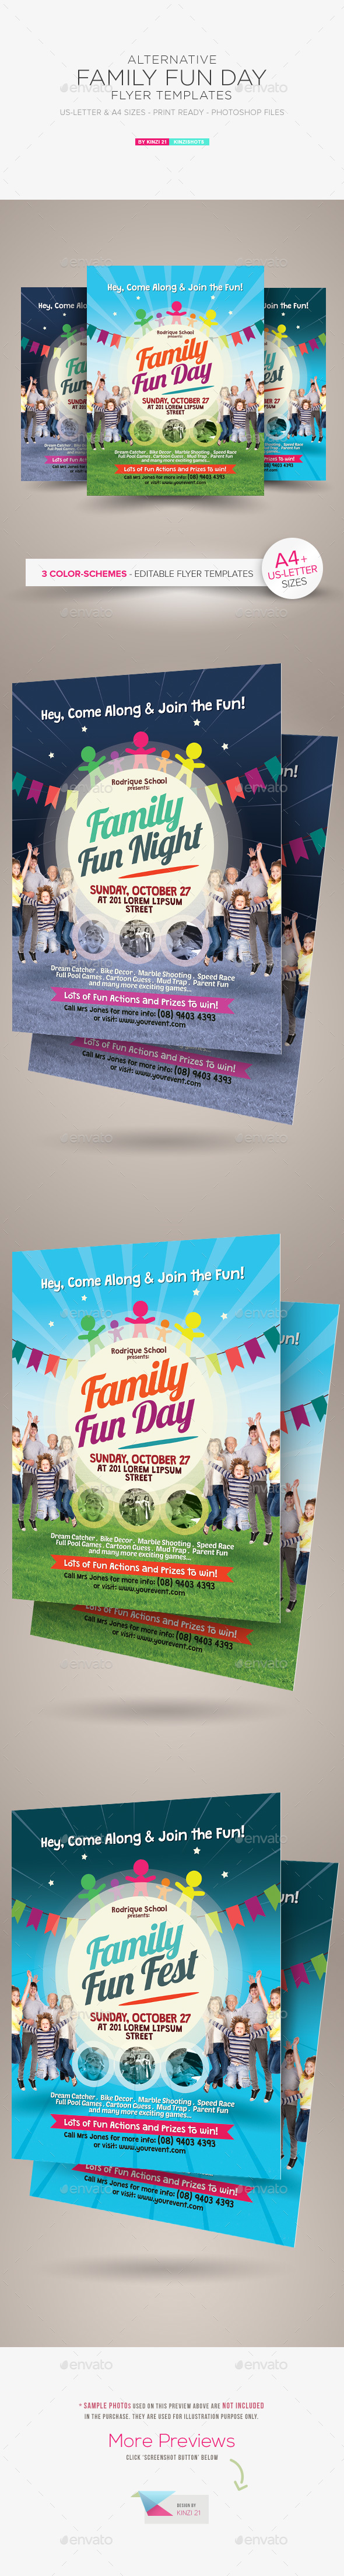 Alternative Family Fun Day Flyers - Holidays Events